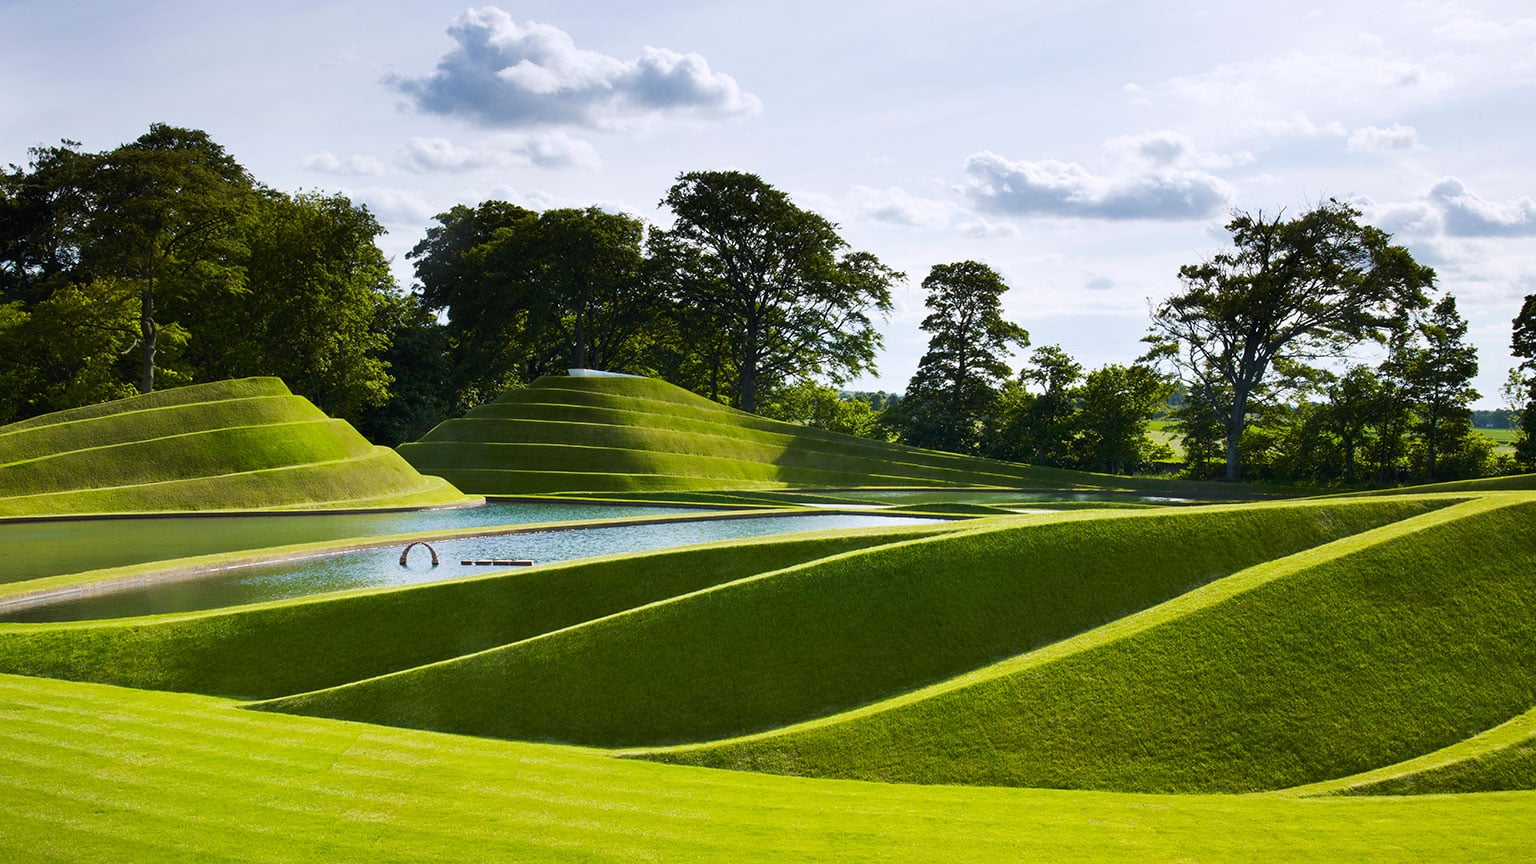 Jupiter artland art fund for Land design landscaping